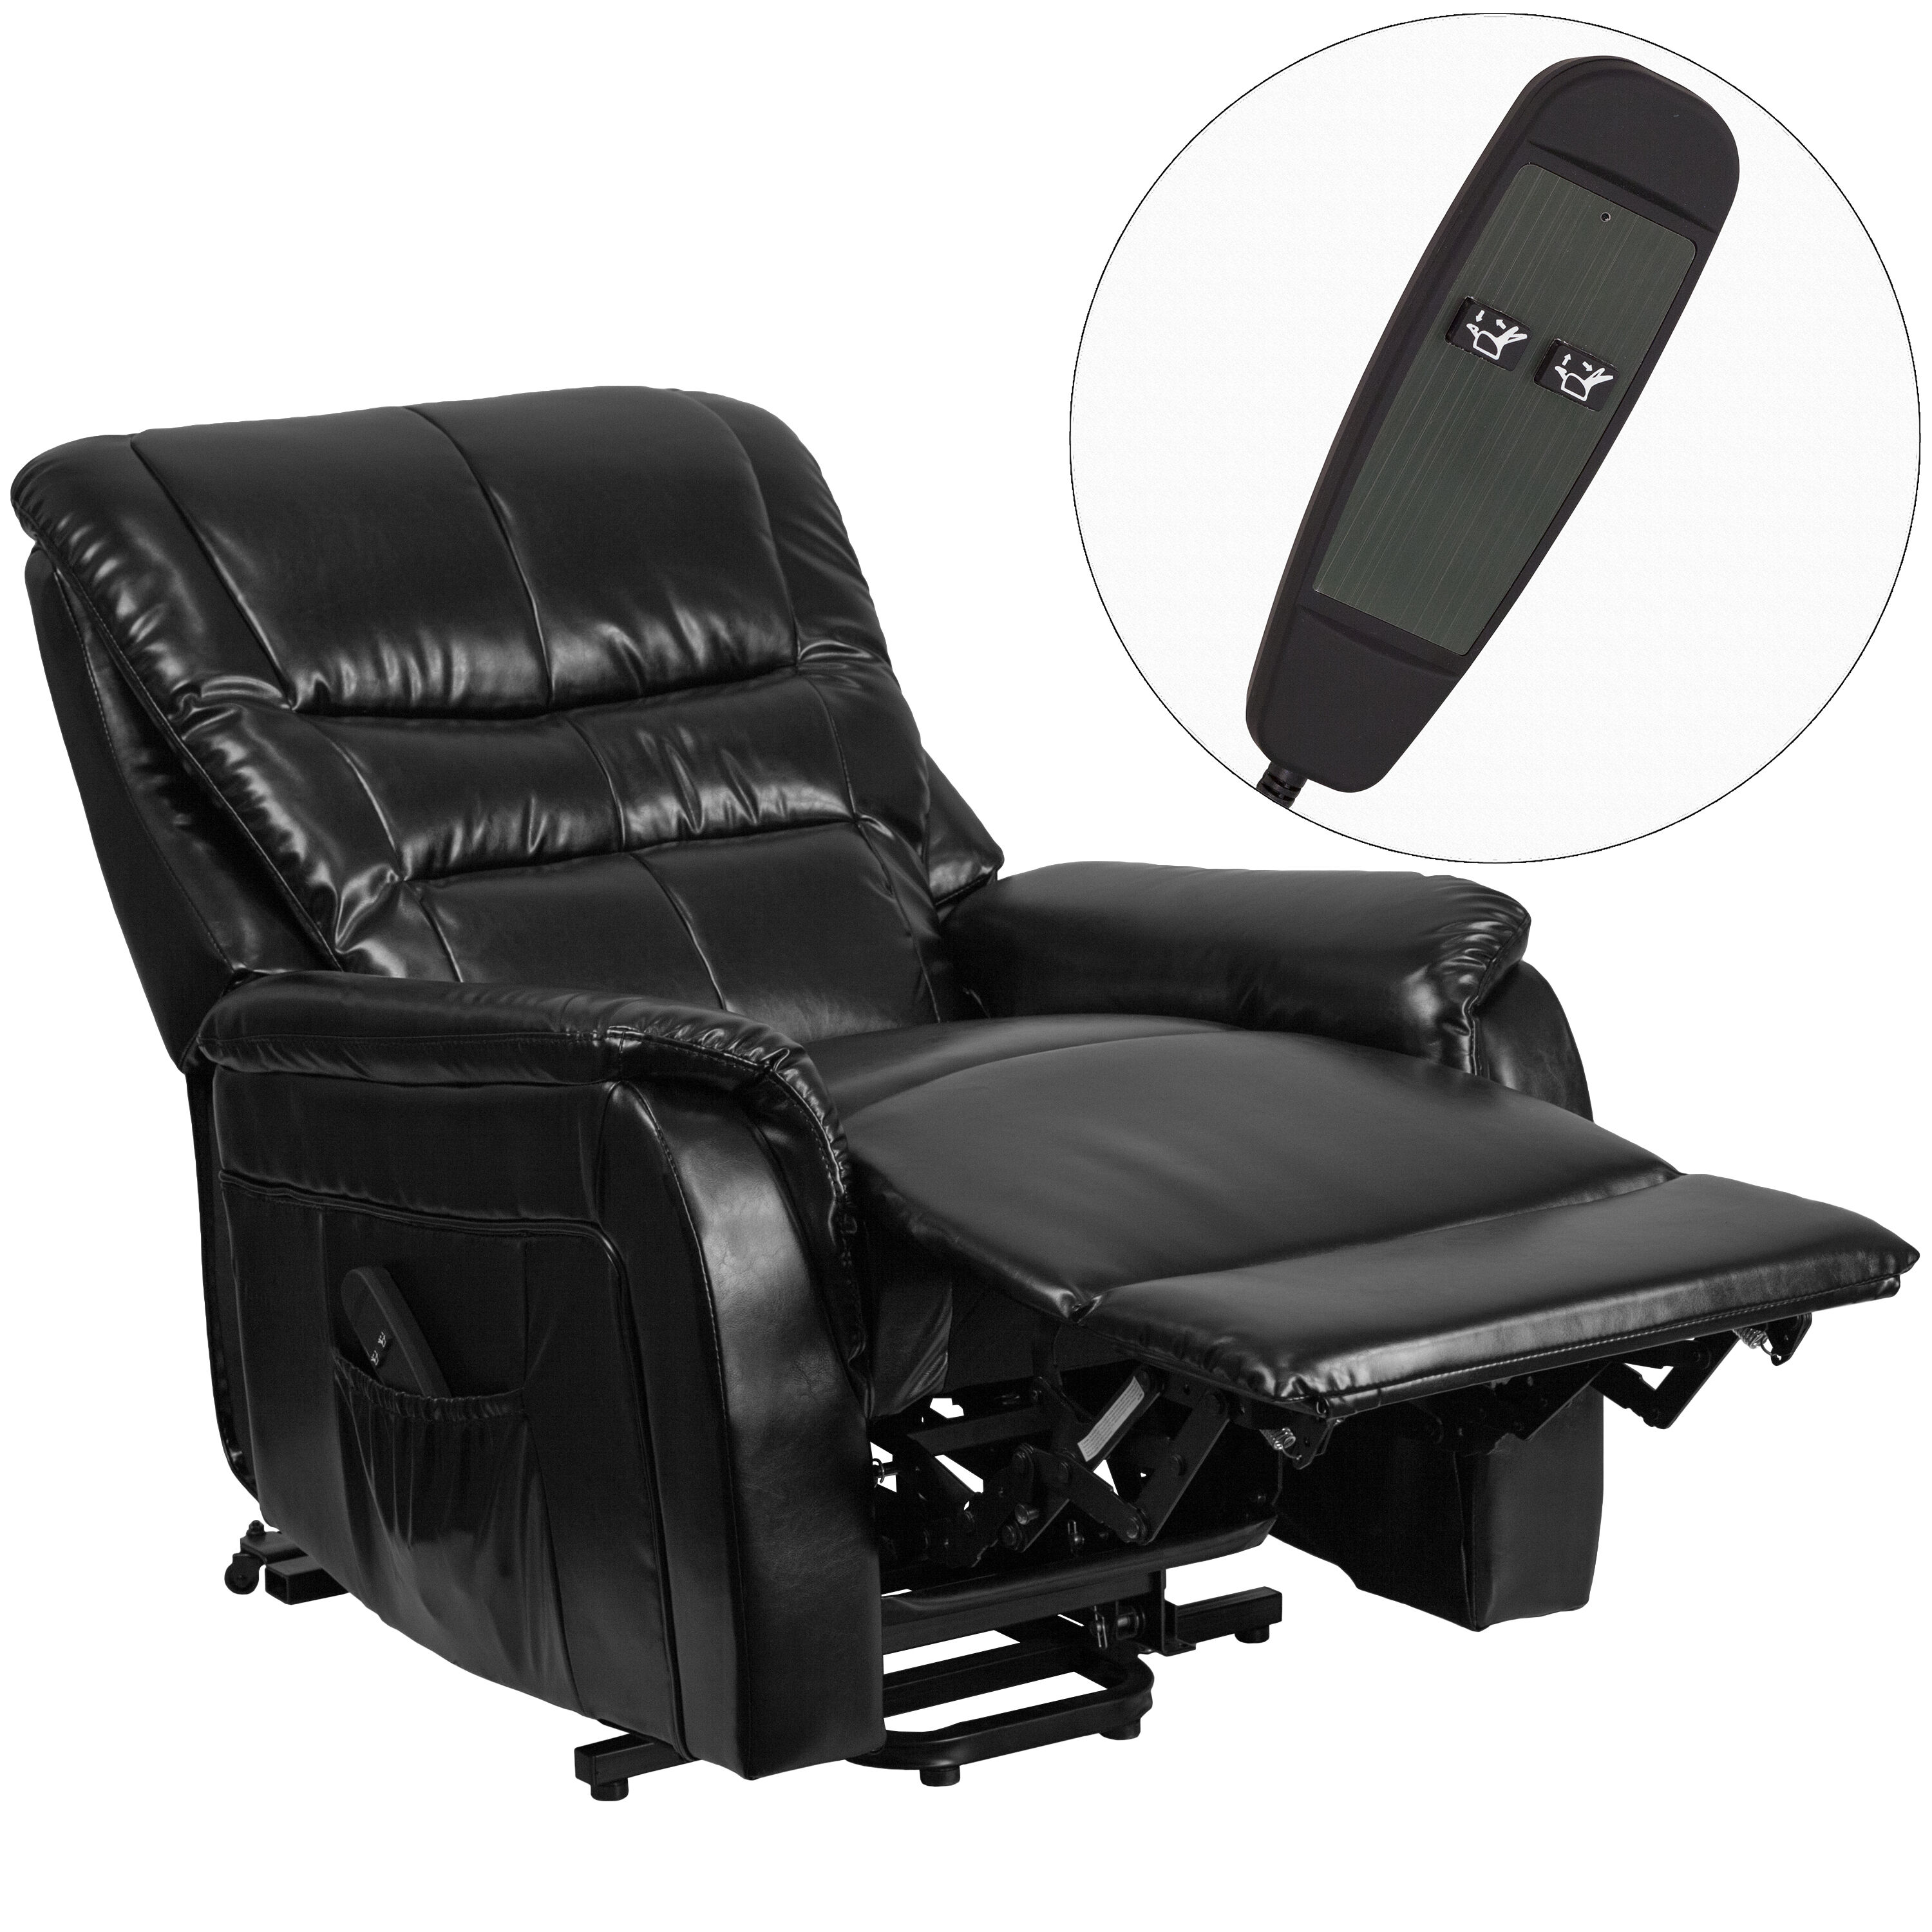 Beau Our HERCULES Series Remote Powered Lift Recliner Is On Sale Now.